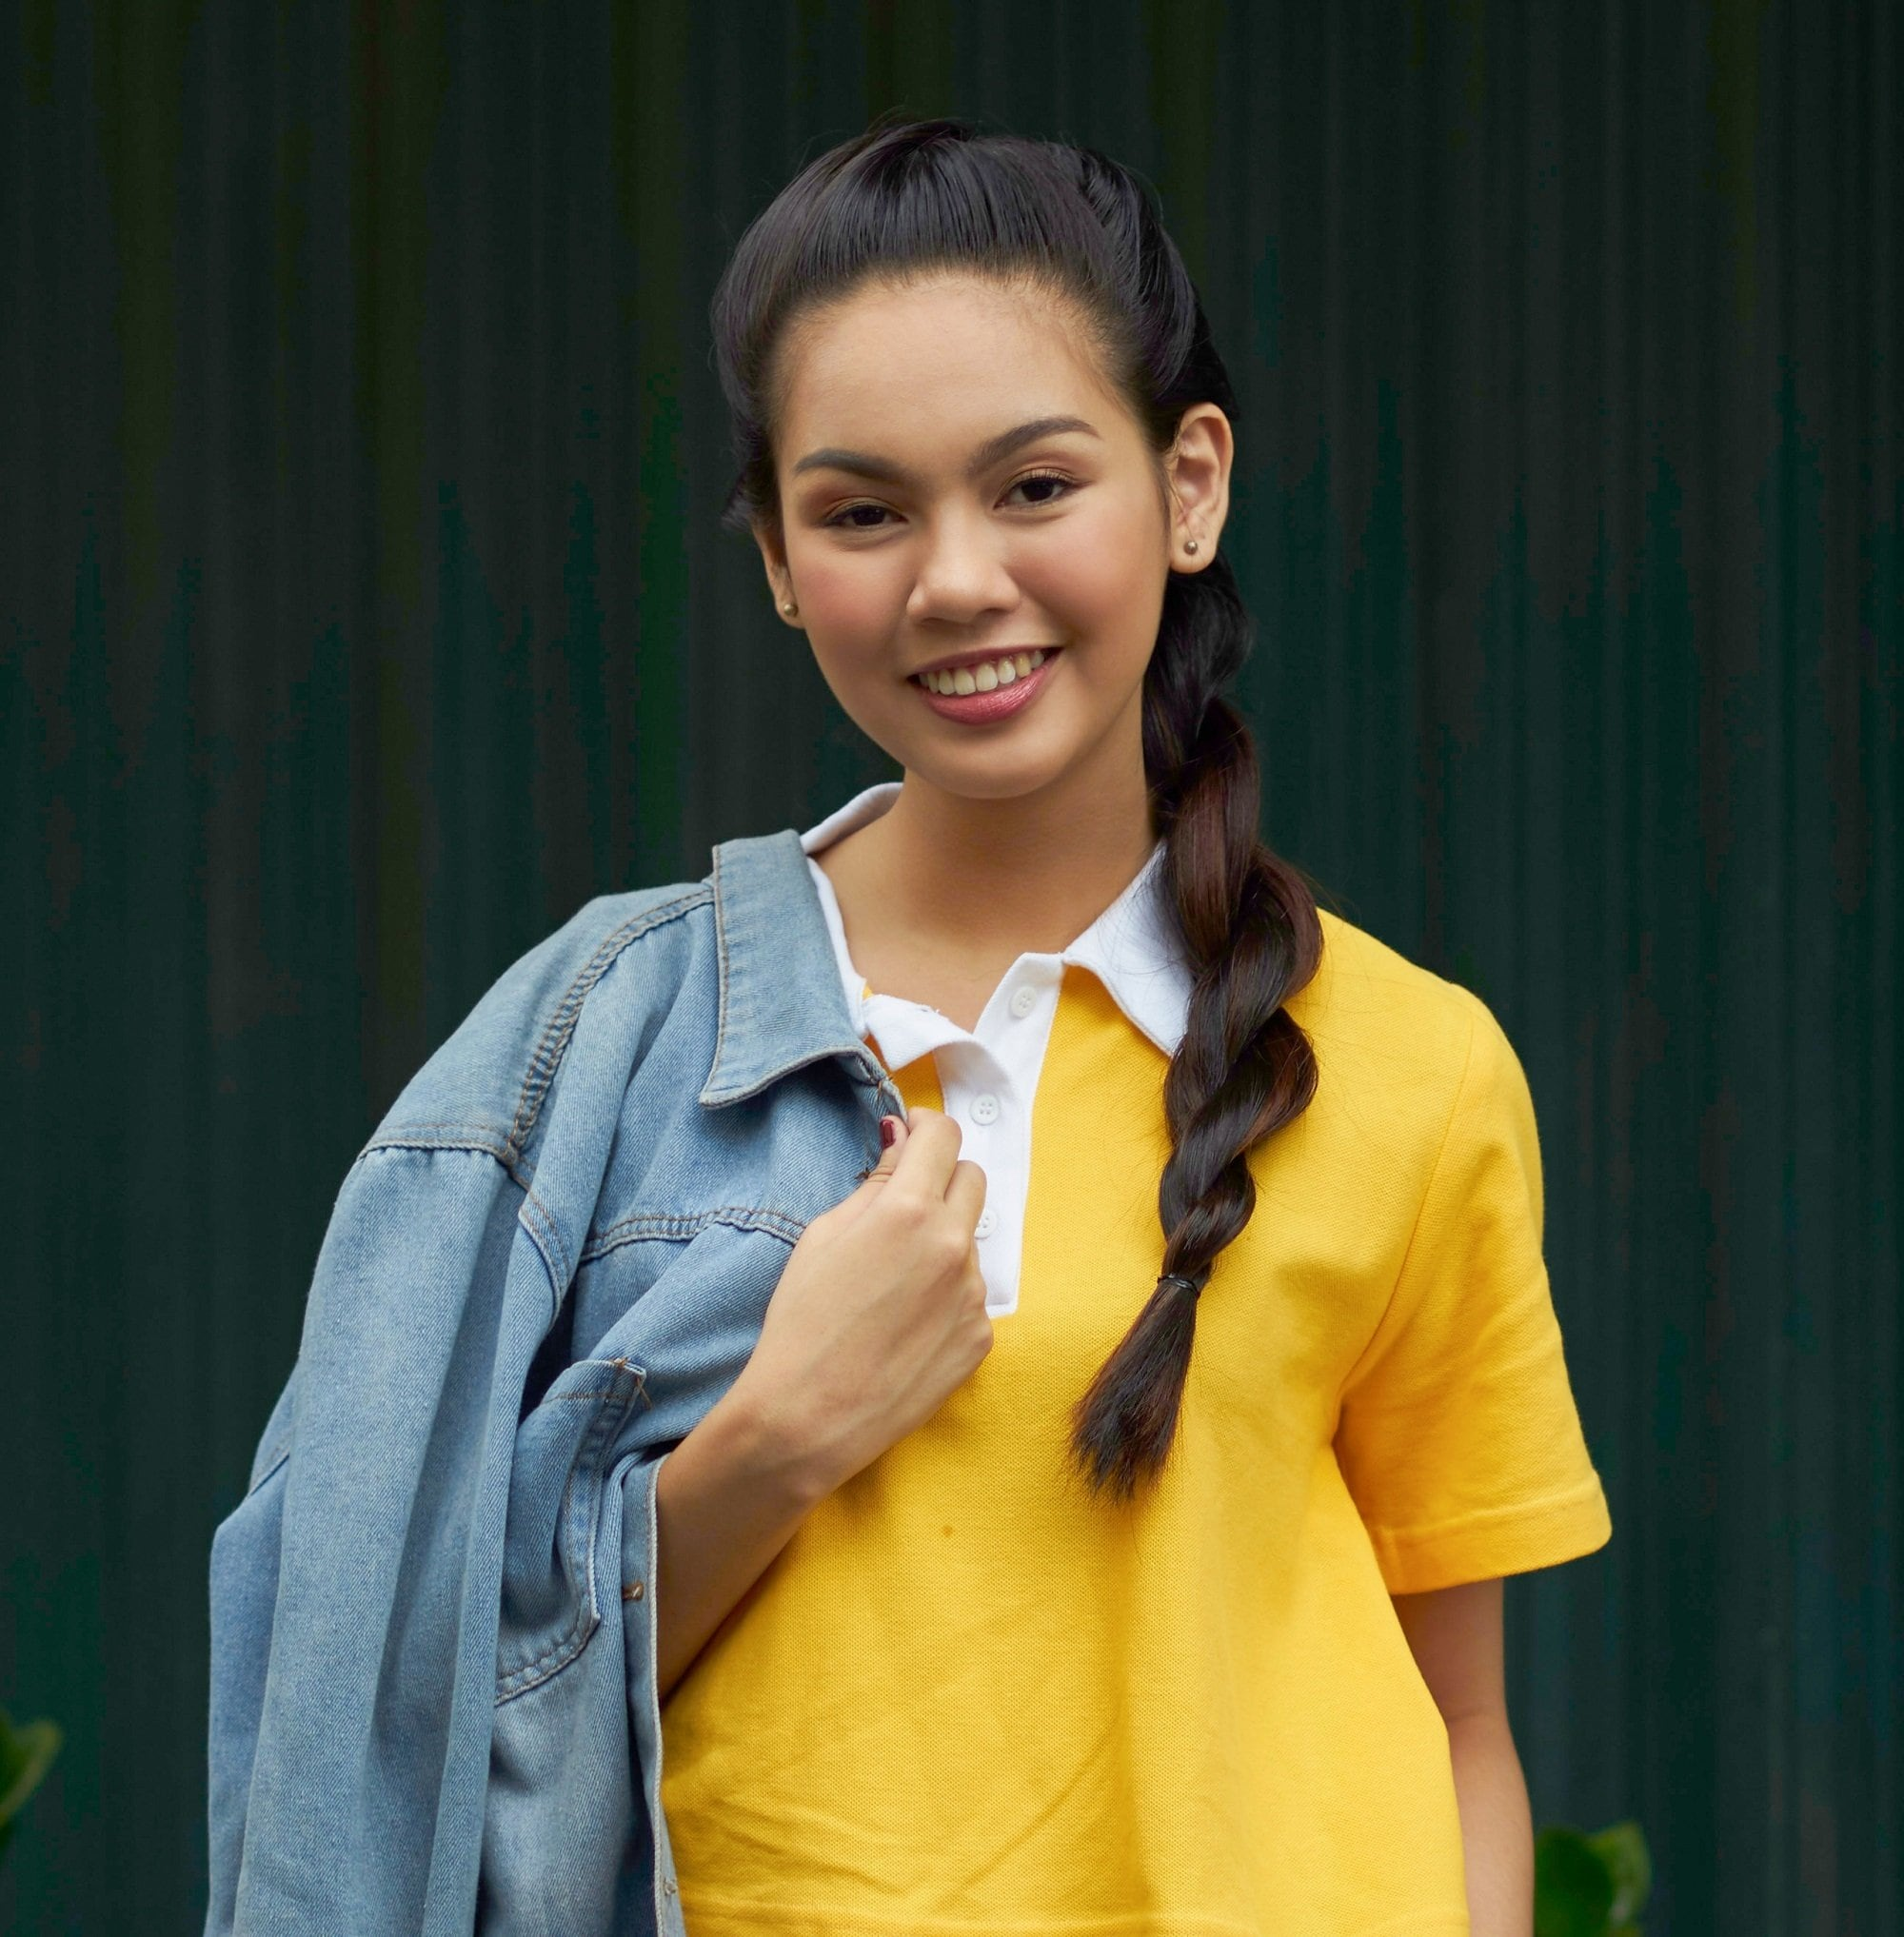 Asian woman with long black hair in a rope braid wearing a yellow shirt outdoors